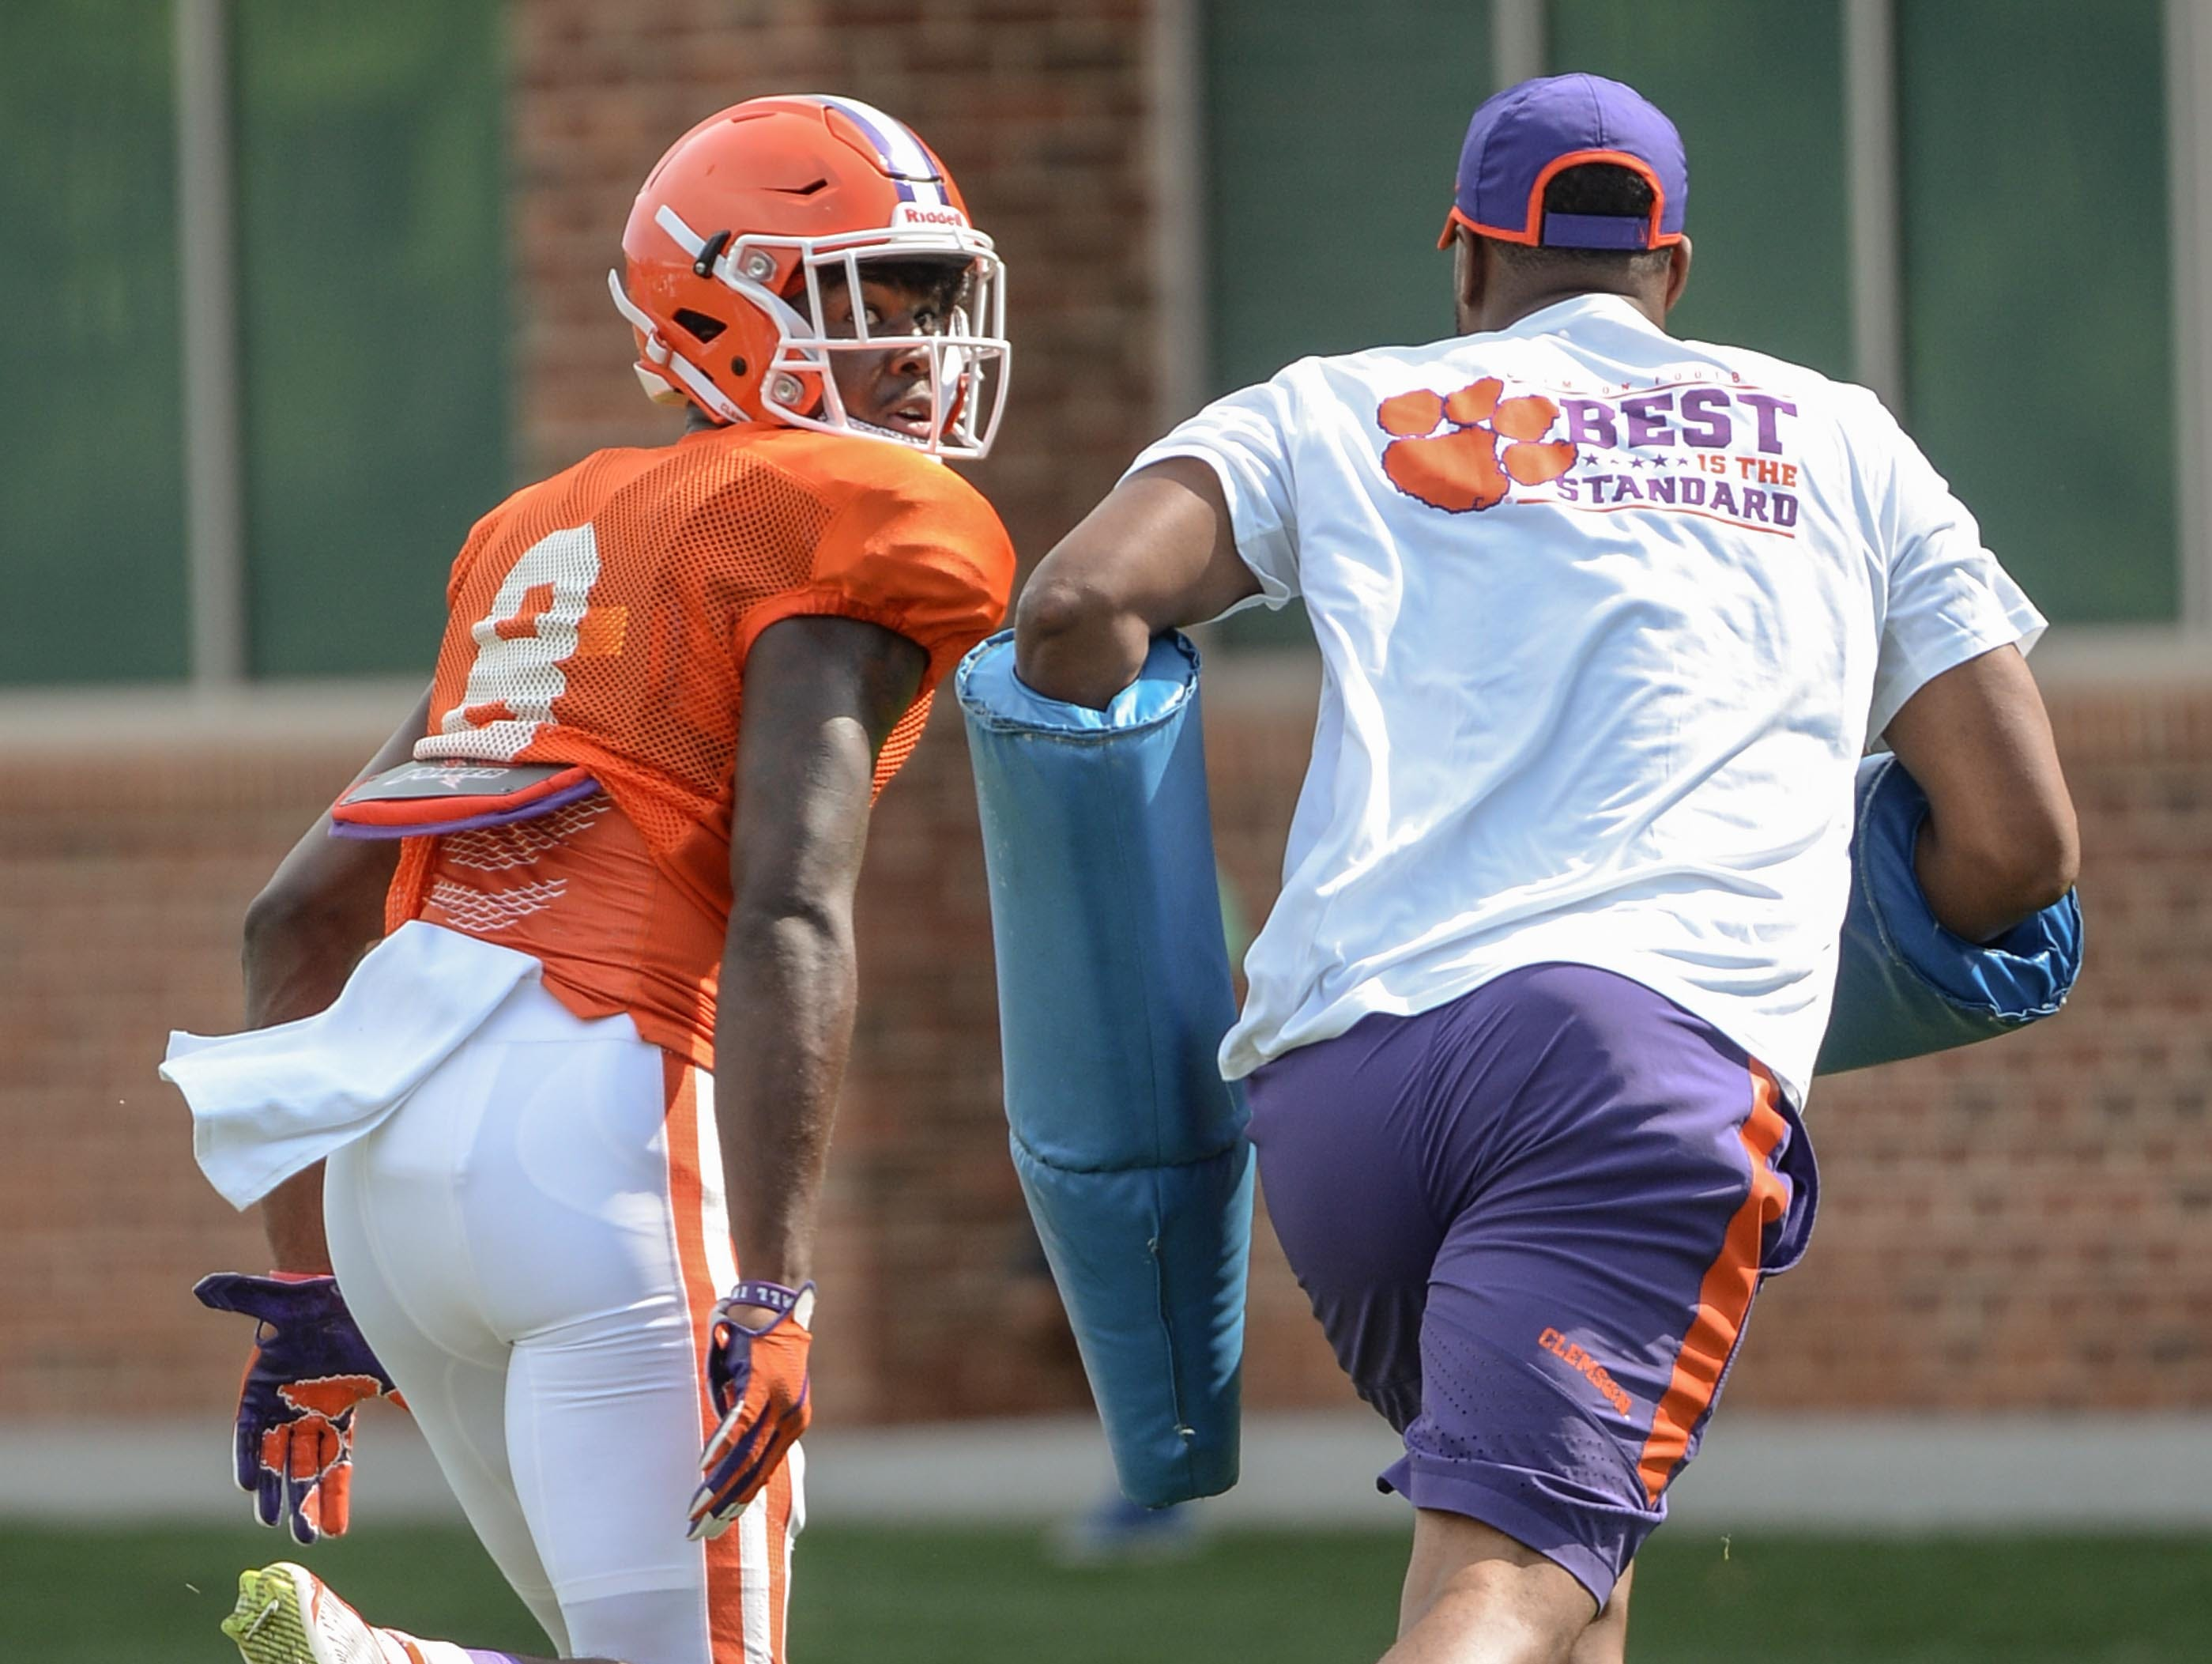 Clemson wide receiver Justyn Ross (8) is followed by receiver coach Xavier Dye, a former Clemson wide receiver, during fall practice in Clemson on Wednesday.